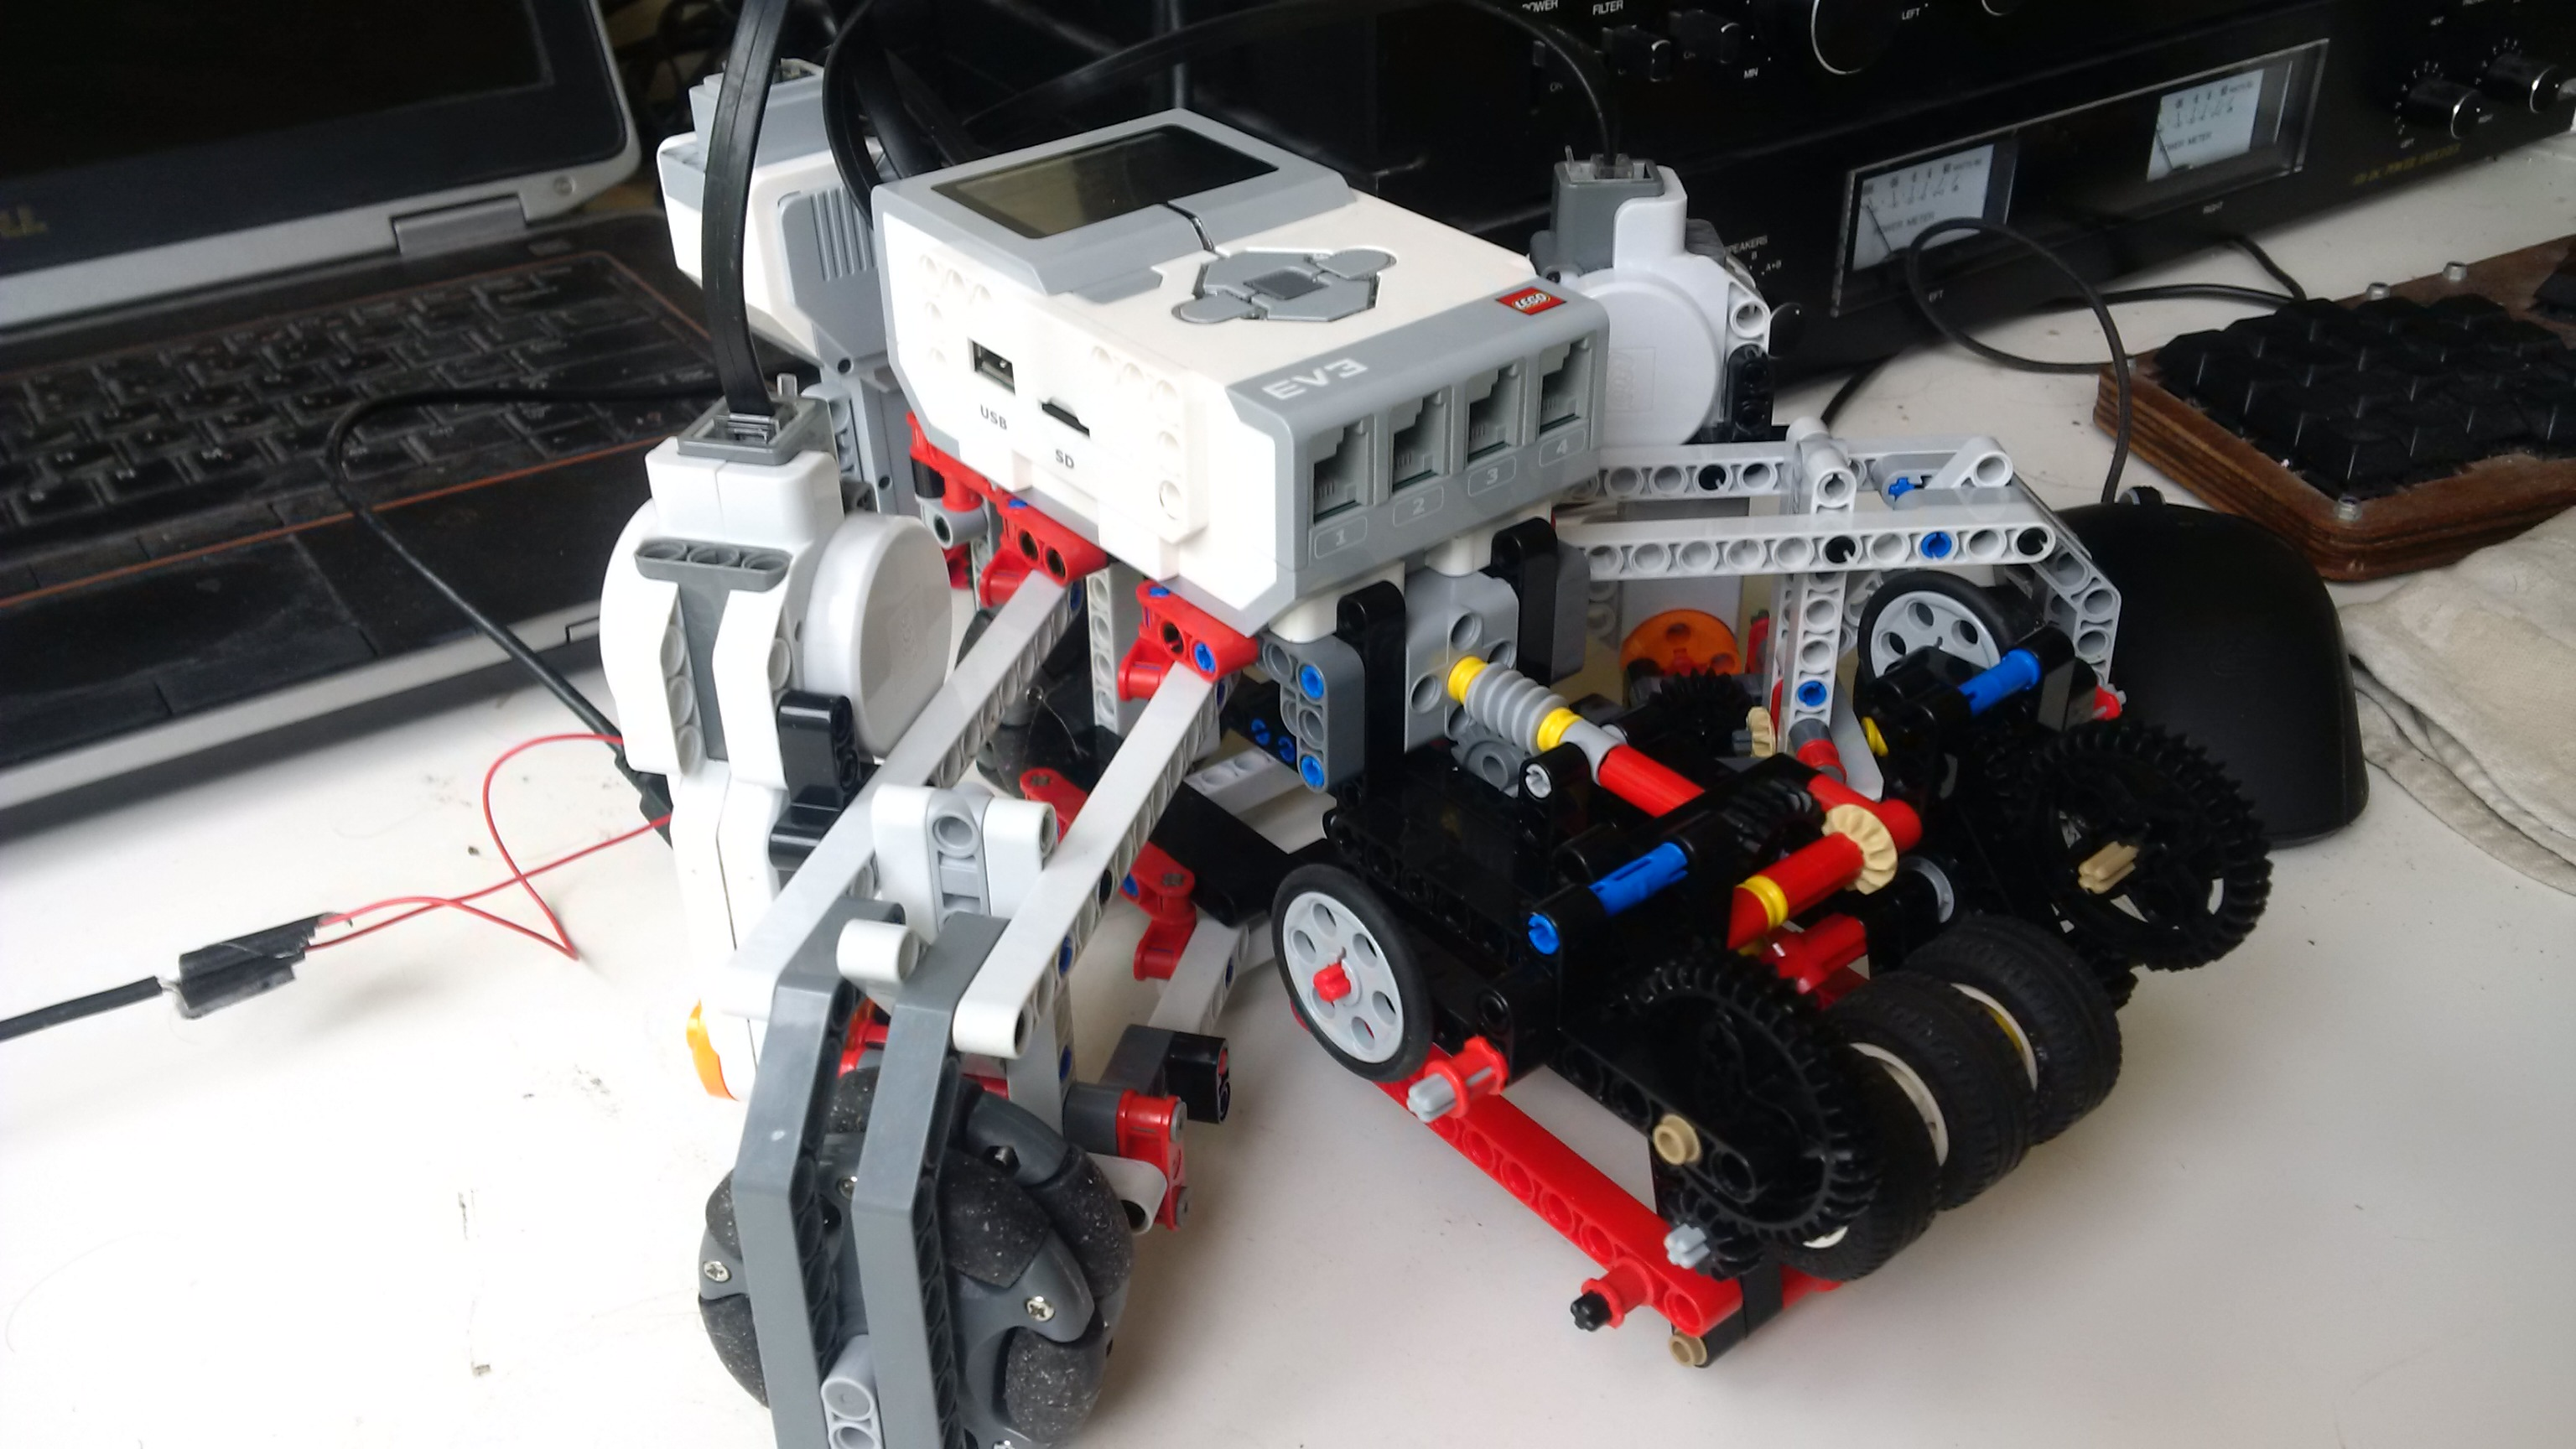 EV3 soccer robot with ROS - Wishful Coding